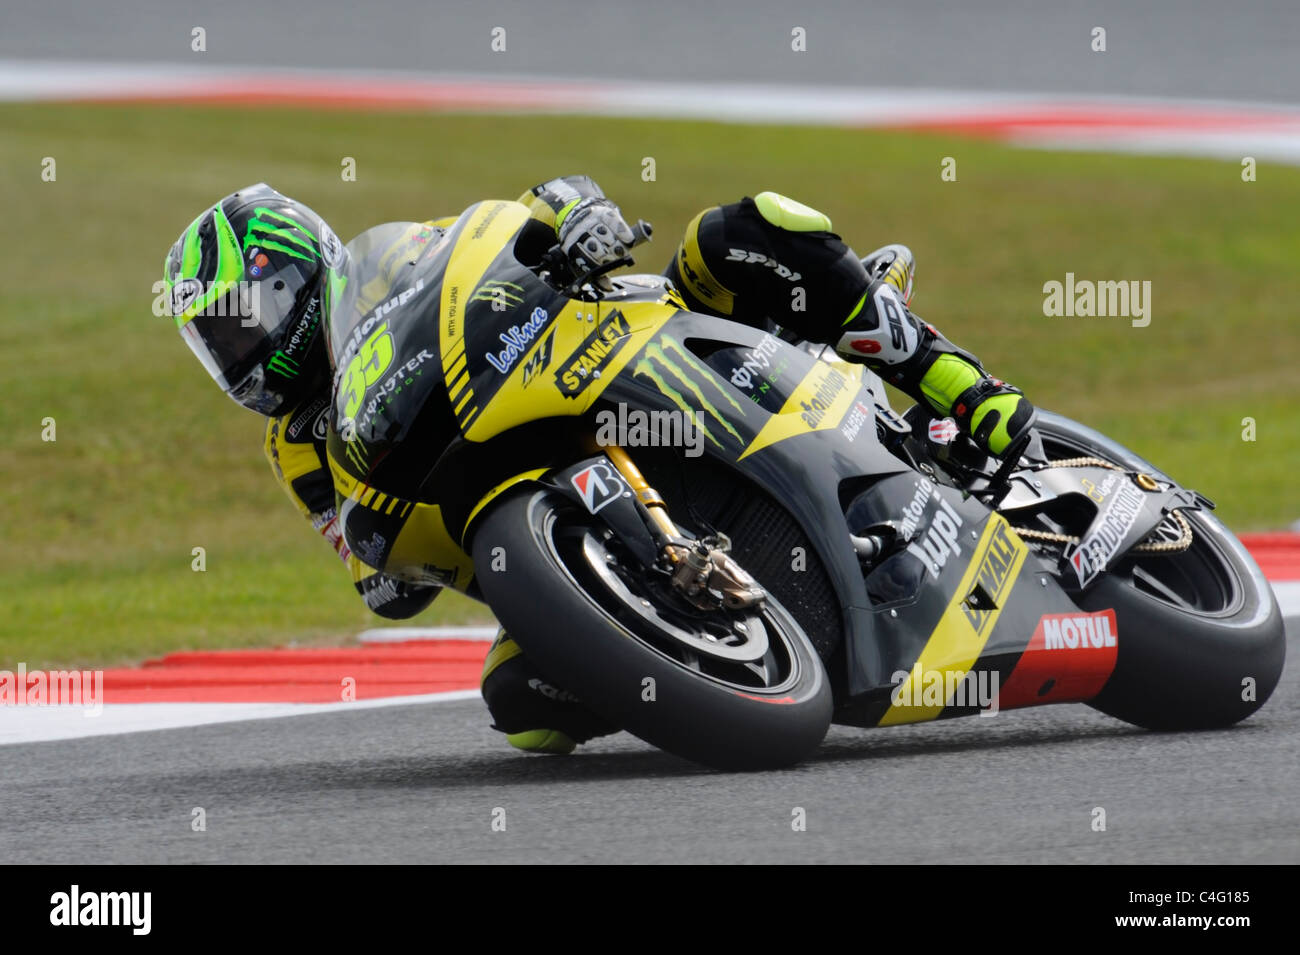 cal crutchlow knee down on the tech 3 yamaha - Stock Image